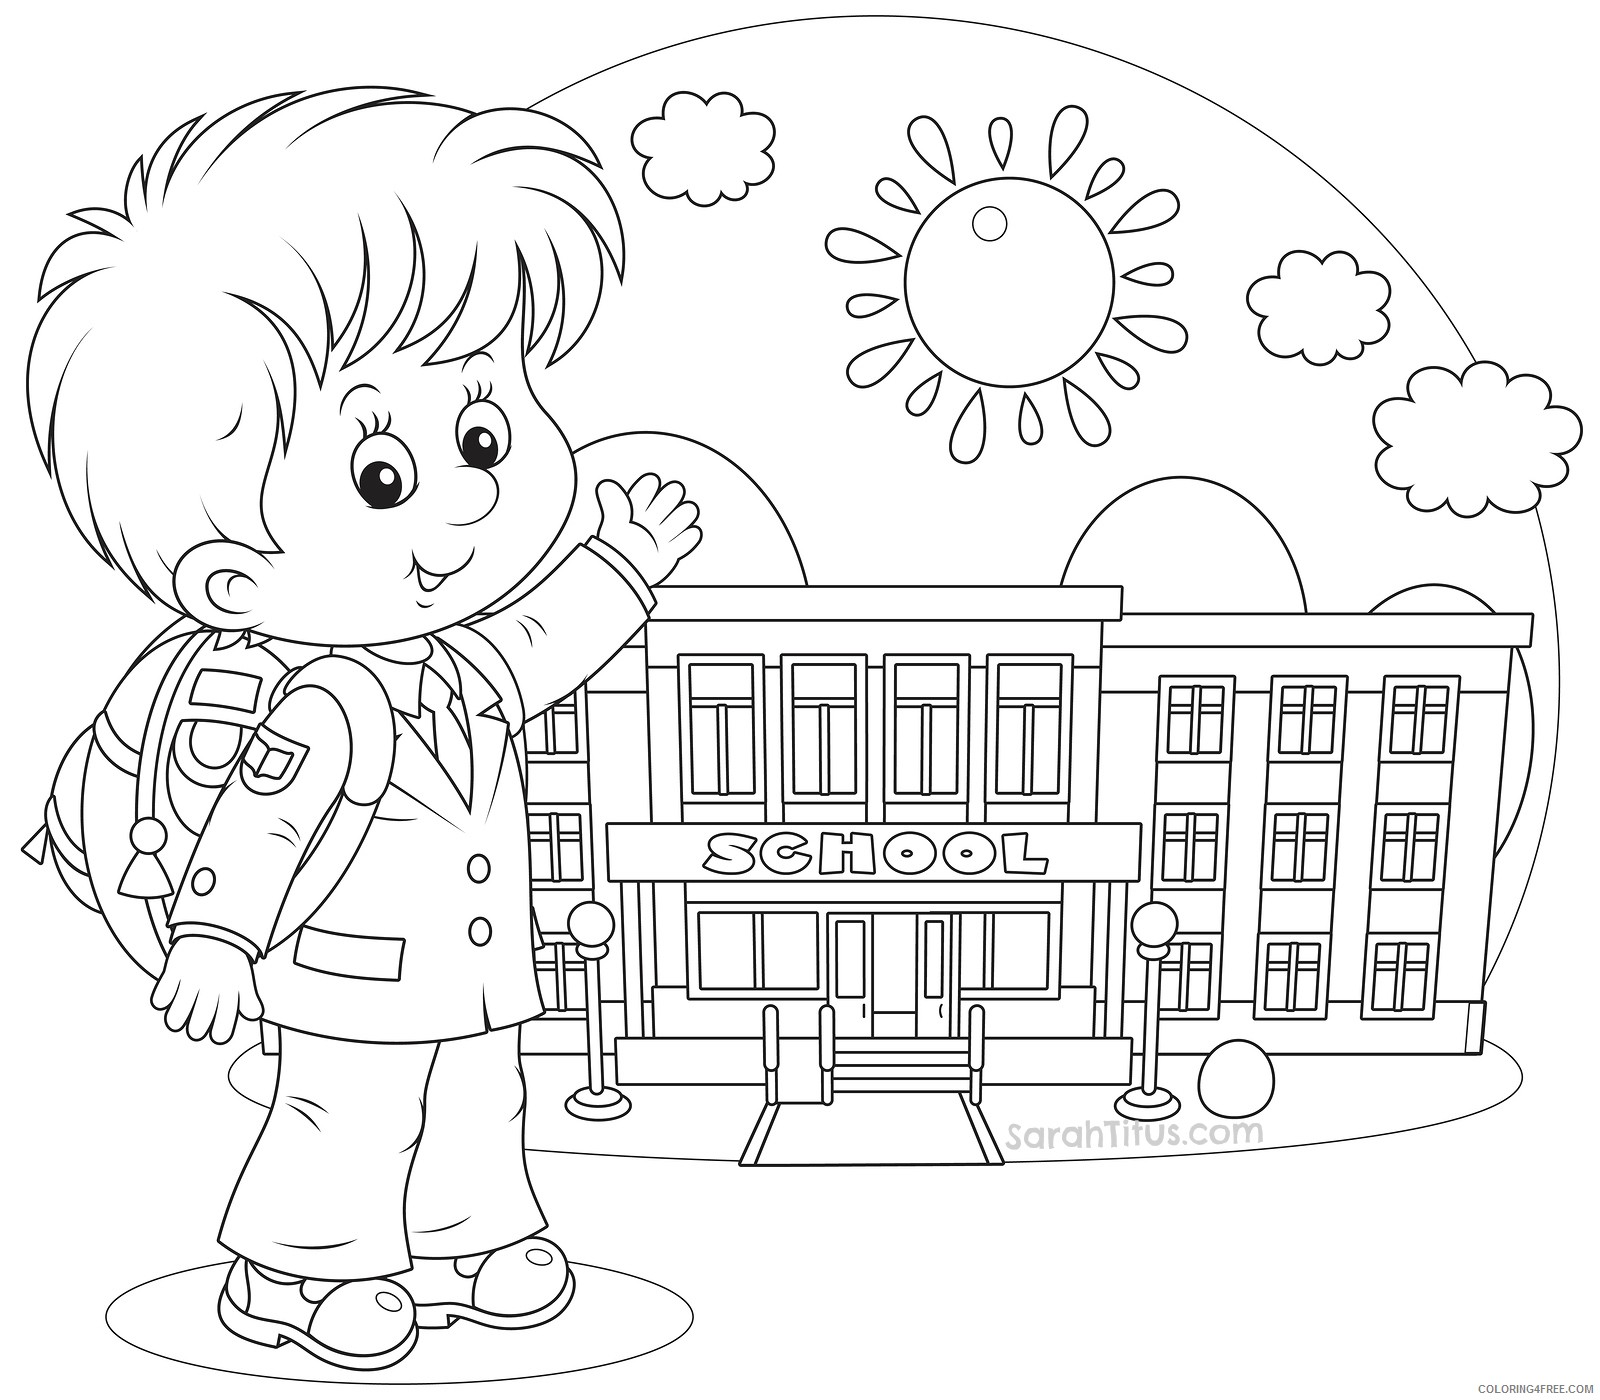 boys back to school coloring pages Coloring4free